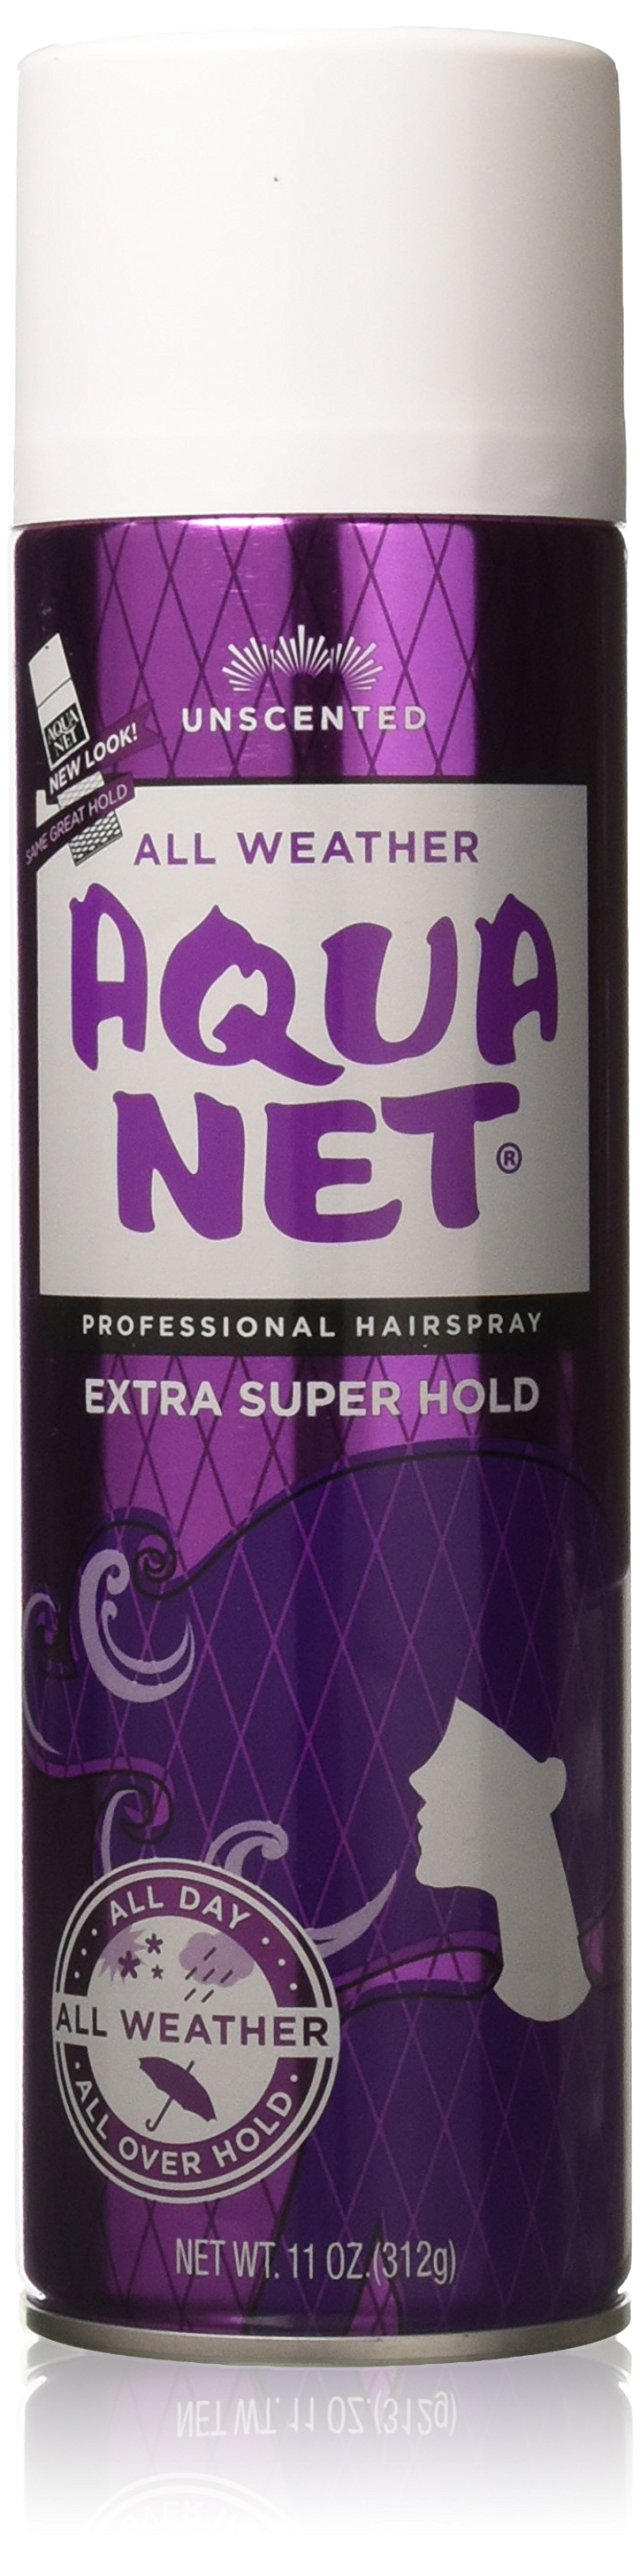 Aqua Net Extra Super Hold Professional Hair Spray Unscented 11 oz(Pack of 3)